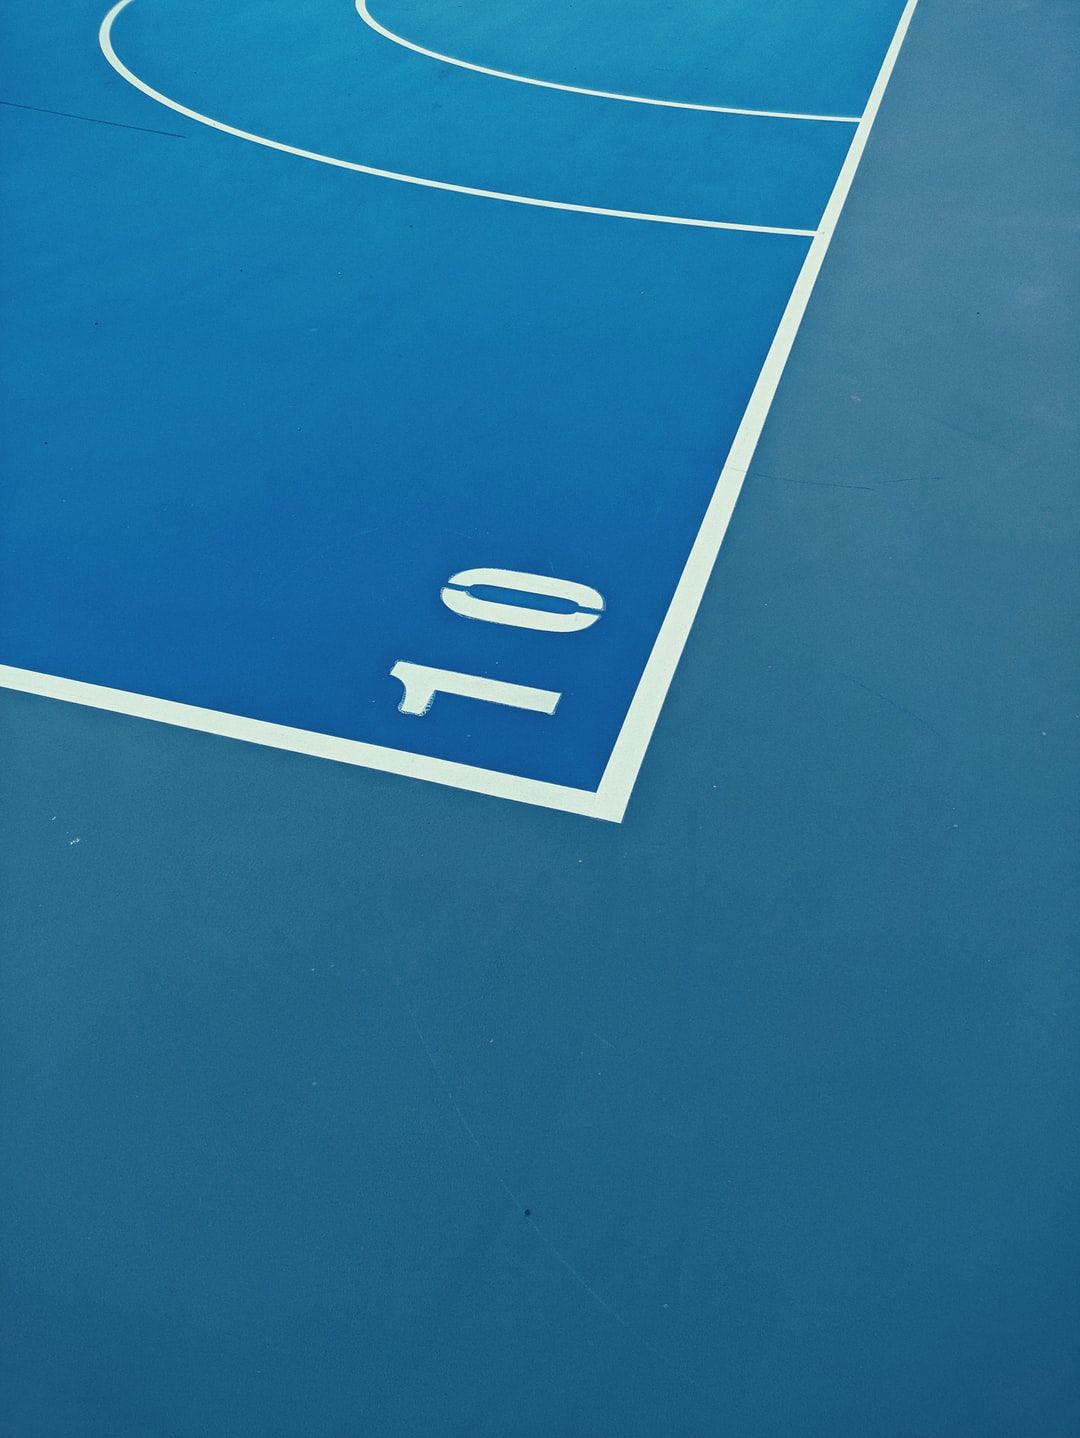 Lines and colours of a blue netball court